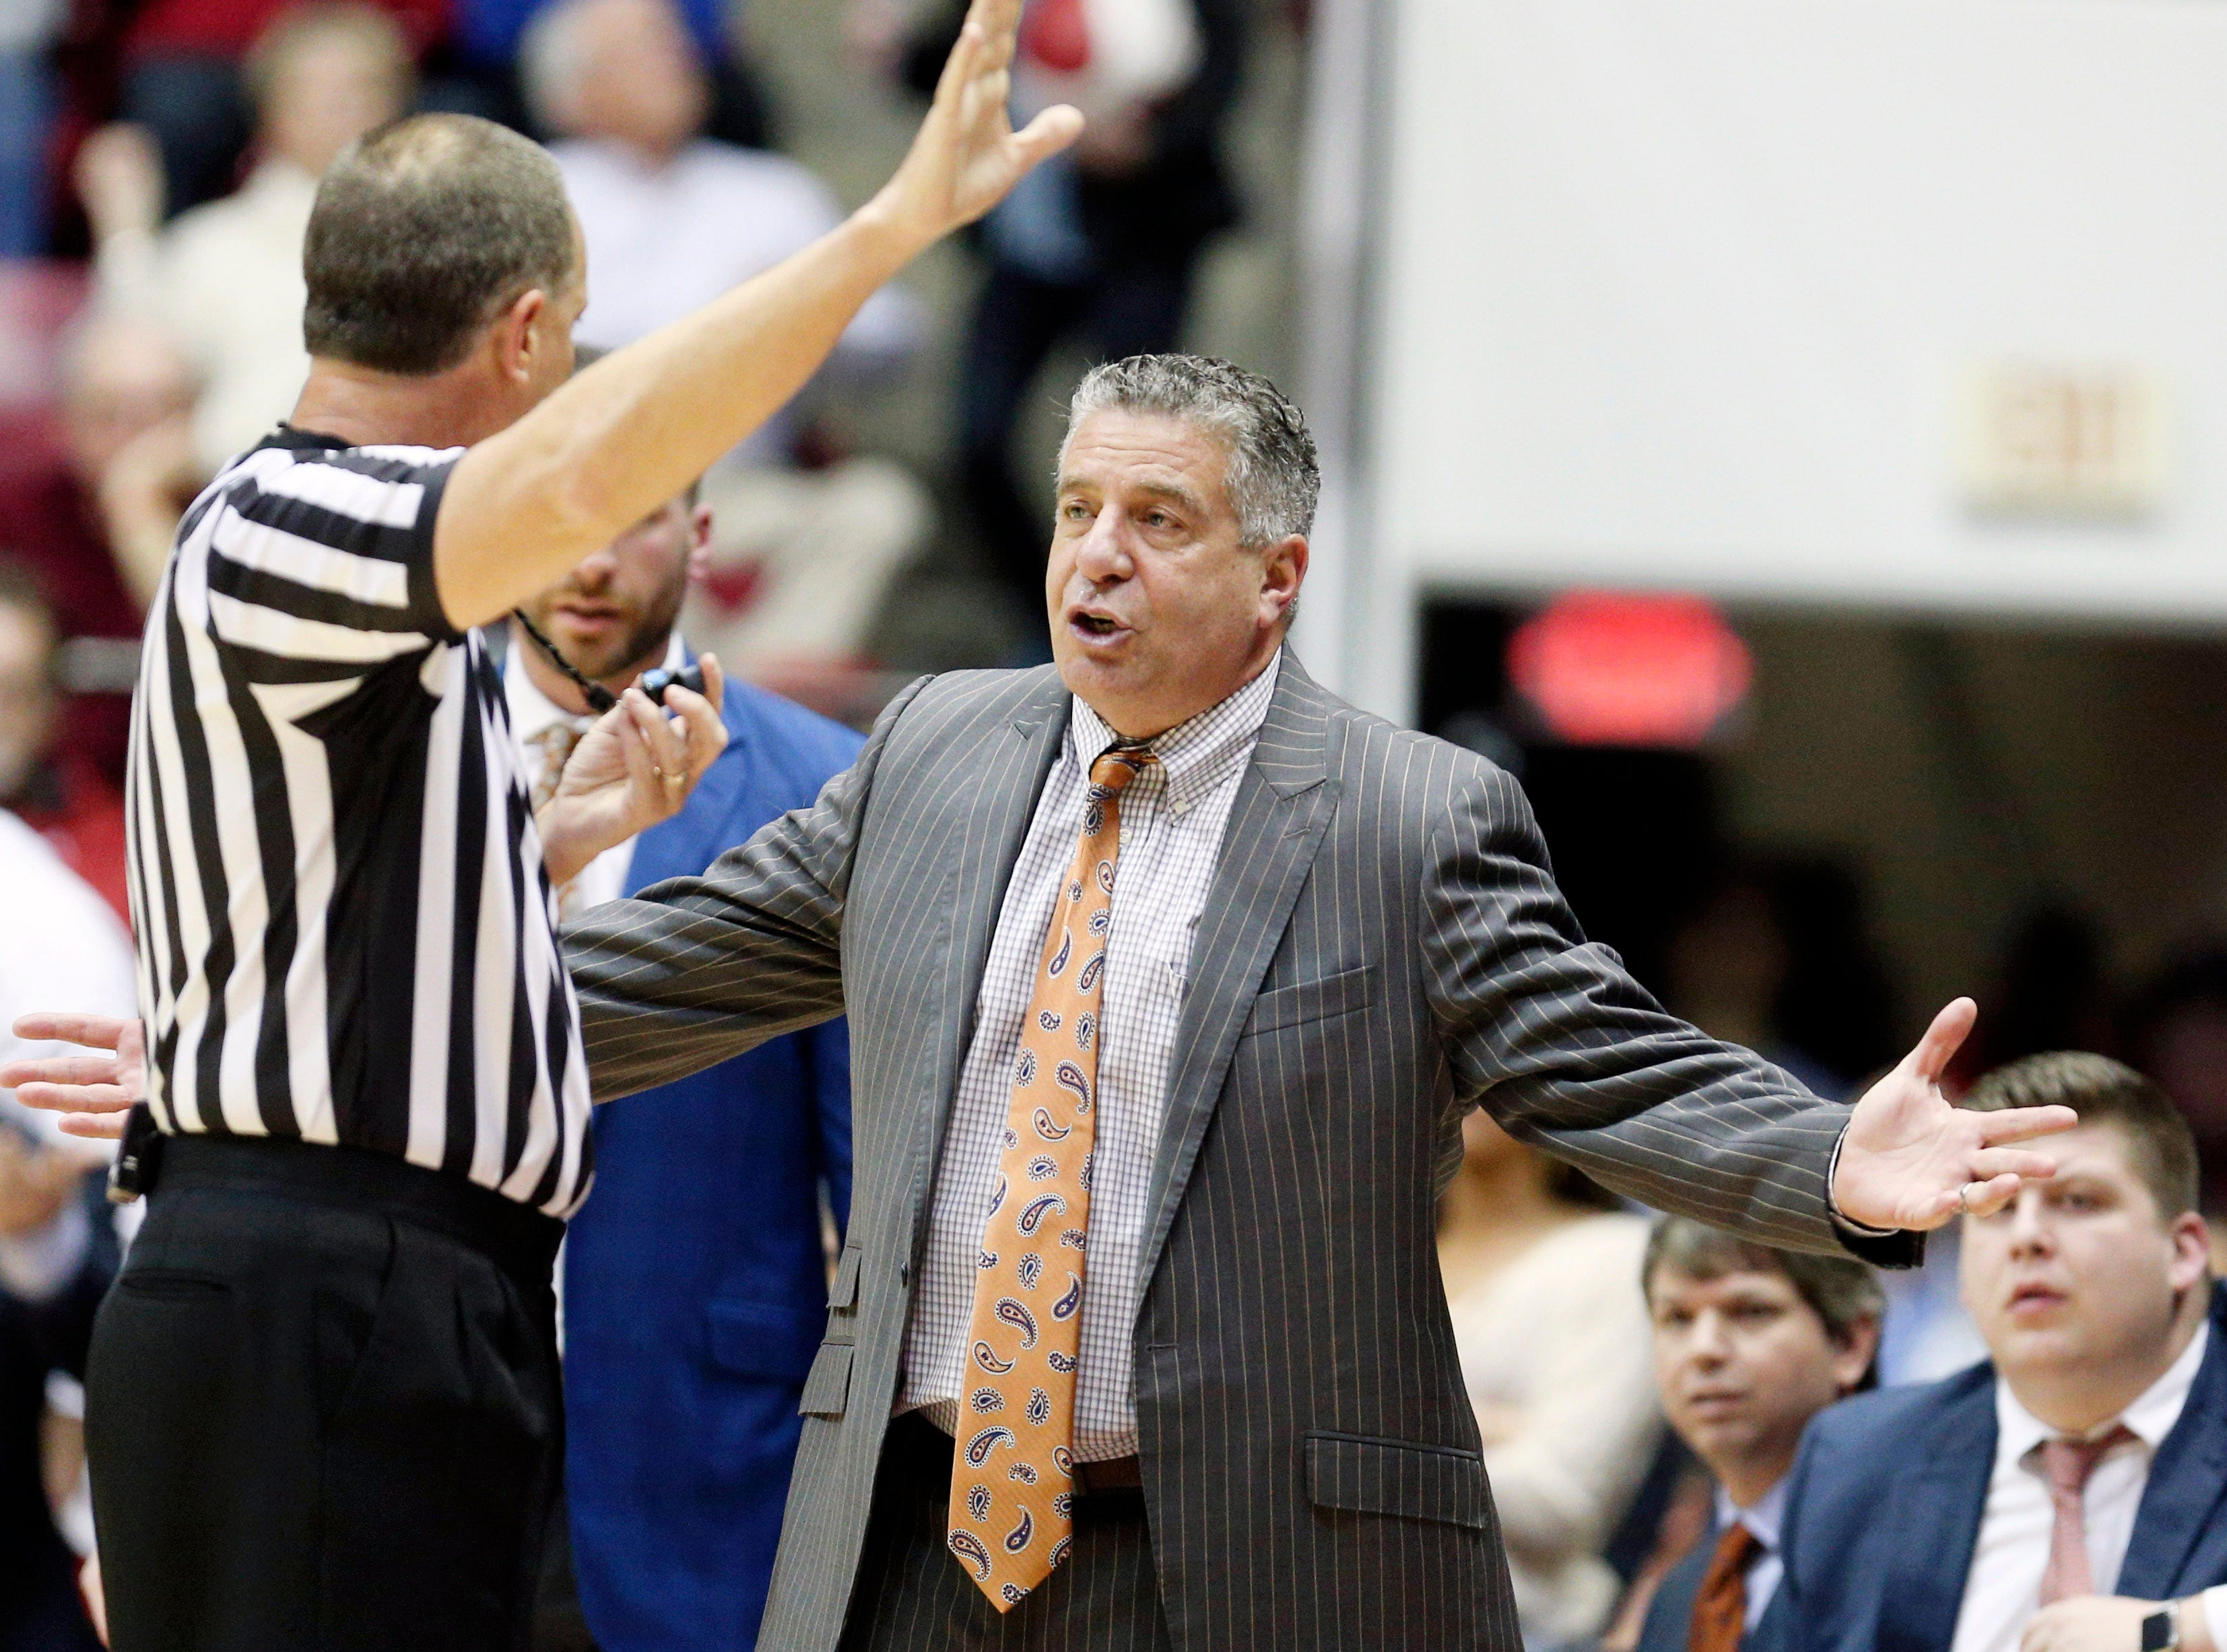 Mar 5, 2019; Tuscaloosa, AL, USA; Auburn Tigers head coach Bruce Pearl talks to an official about a call during the first half against Alabama Crimson Tide at Coleman Coliseum. Mandatory Credit: Marvin Gentry-USA TODAY Sports